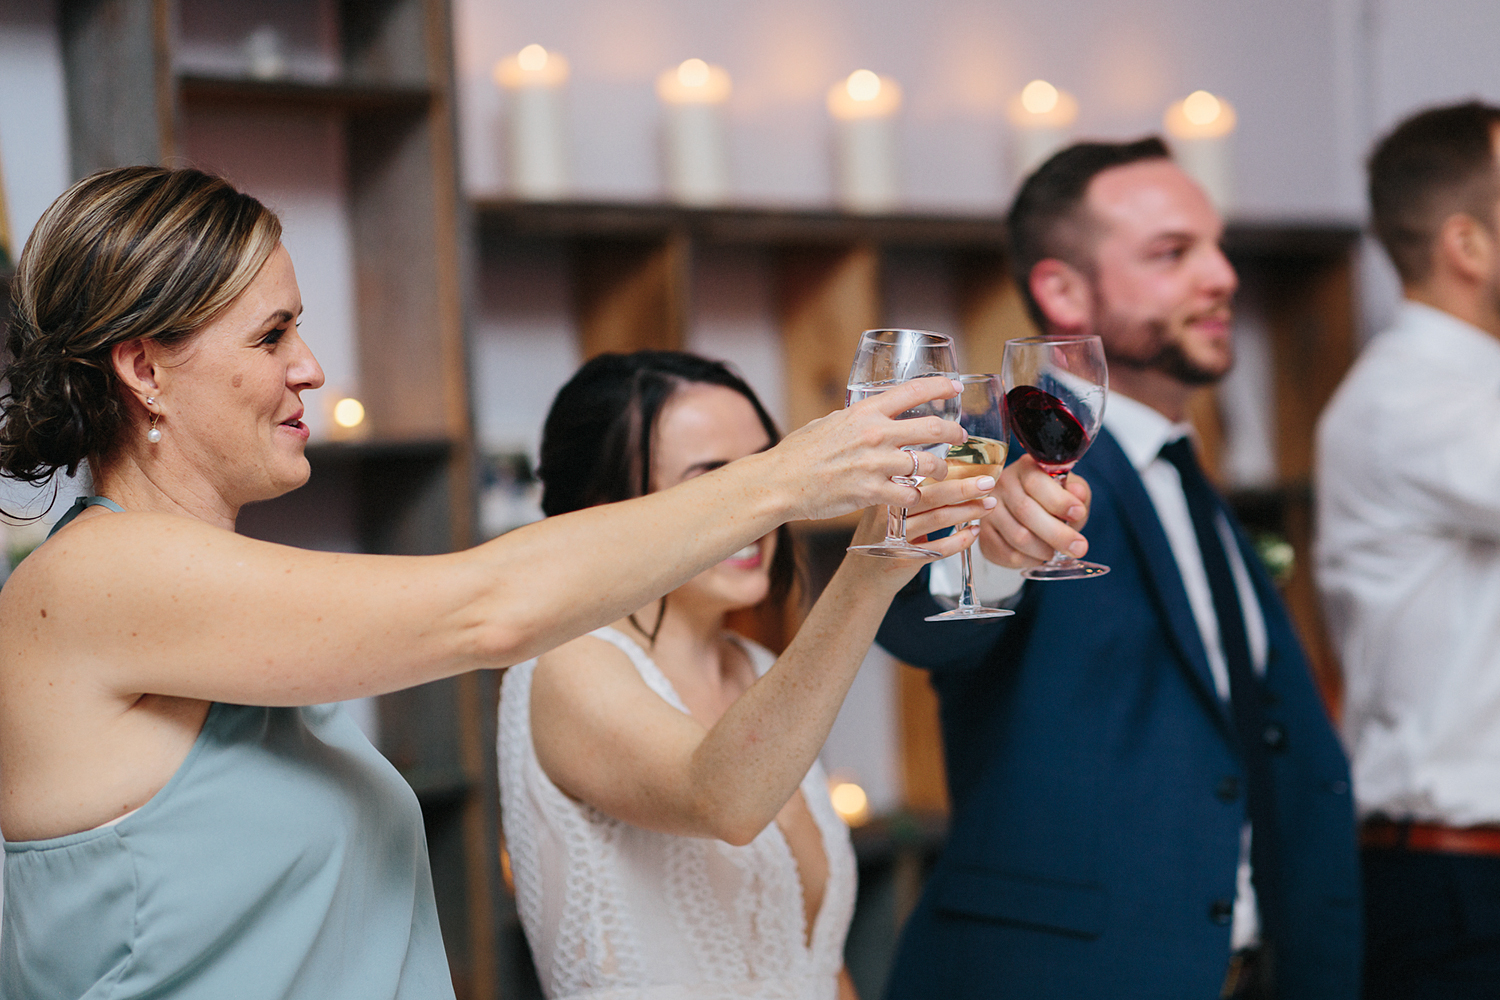 36-Best-Wedding-photographers-Toronto-NAtural-Candid-wedding-photography-Airship37-Reception-Venue-speeches-mom-cheers-toast-bride-and-groom.jpg